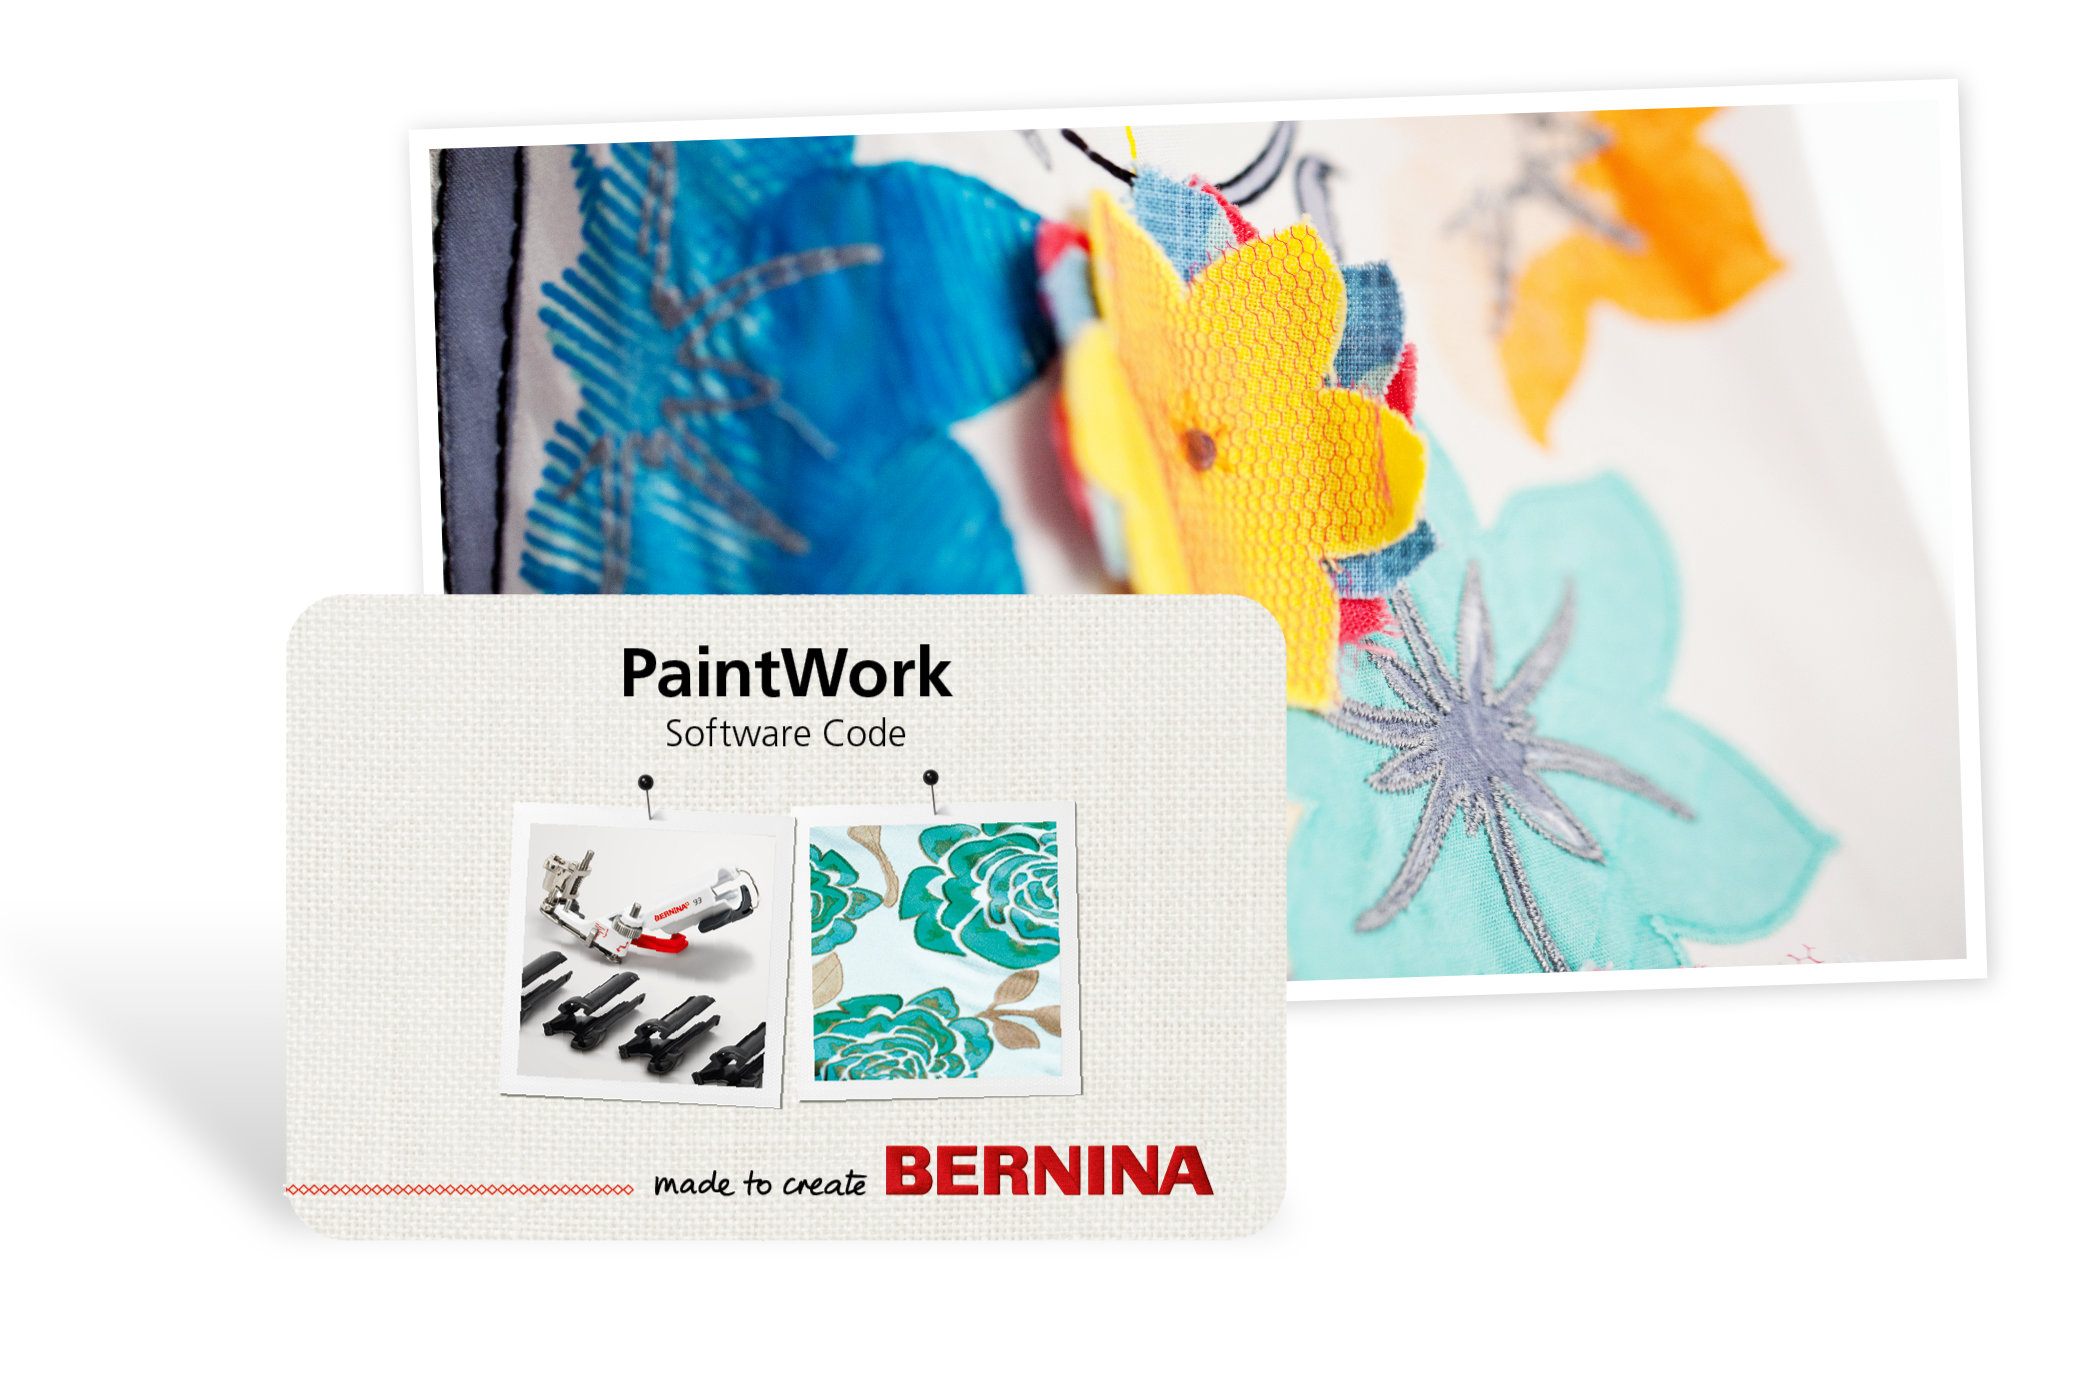 BERNINA PaintWork Software